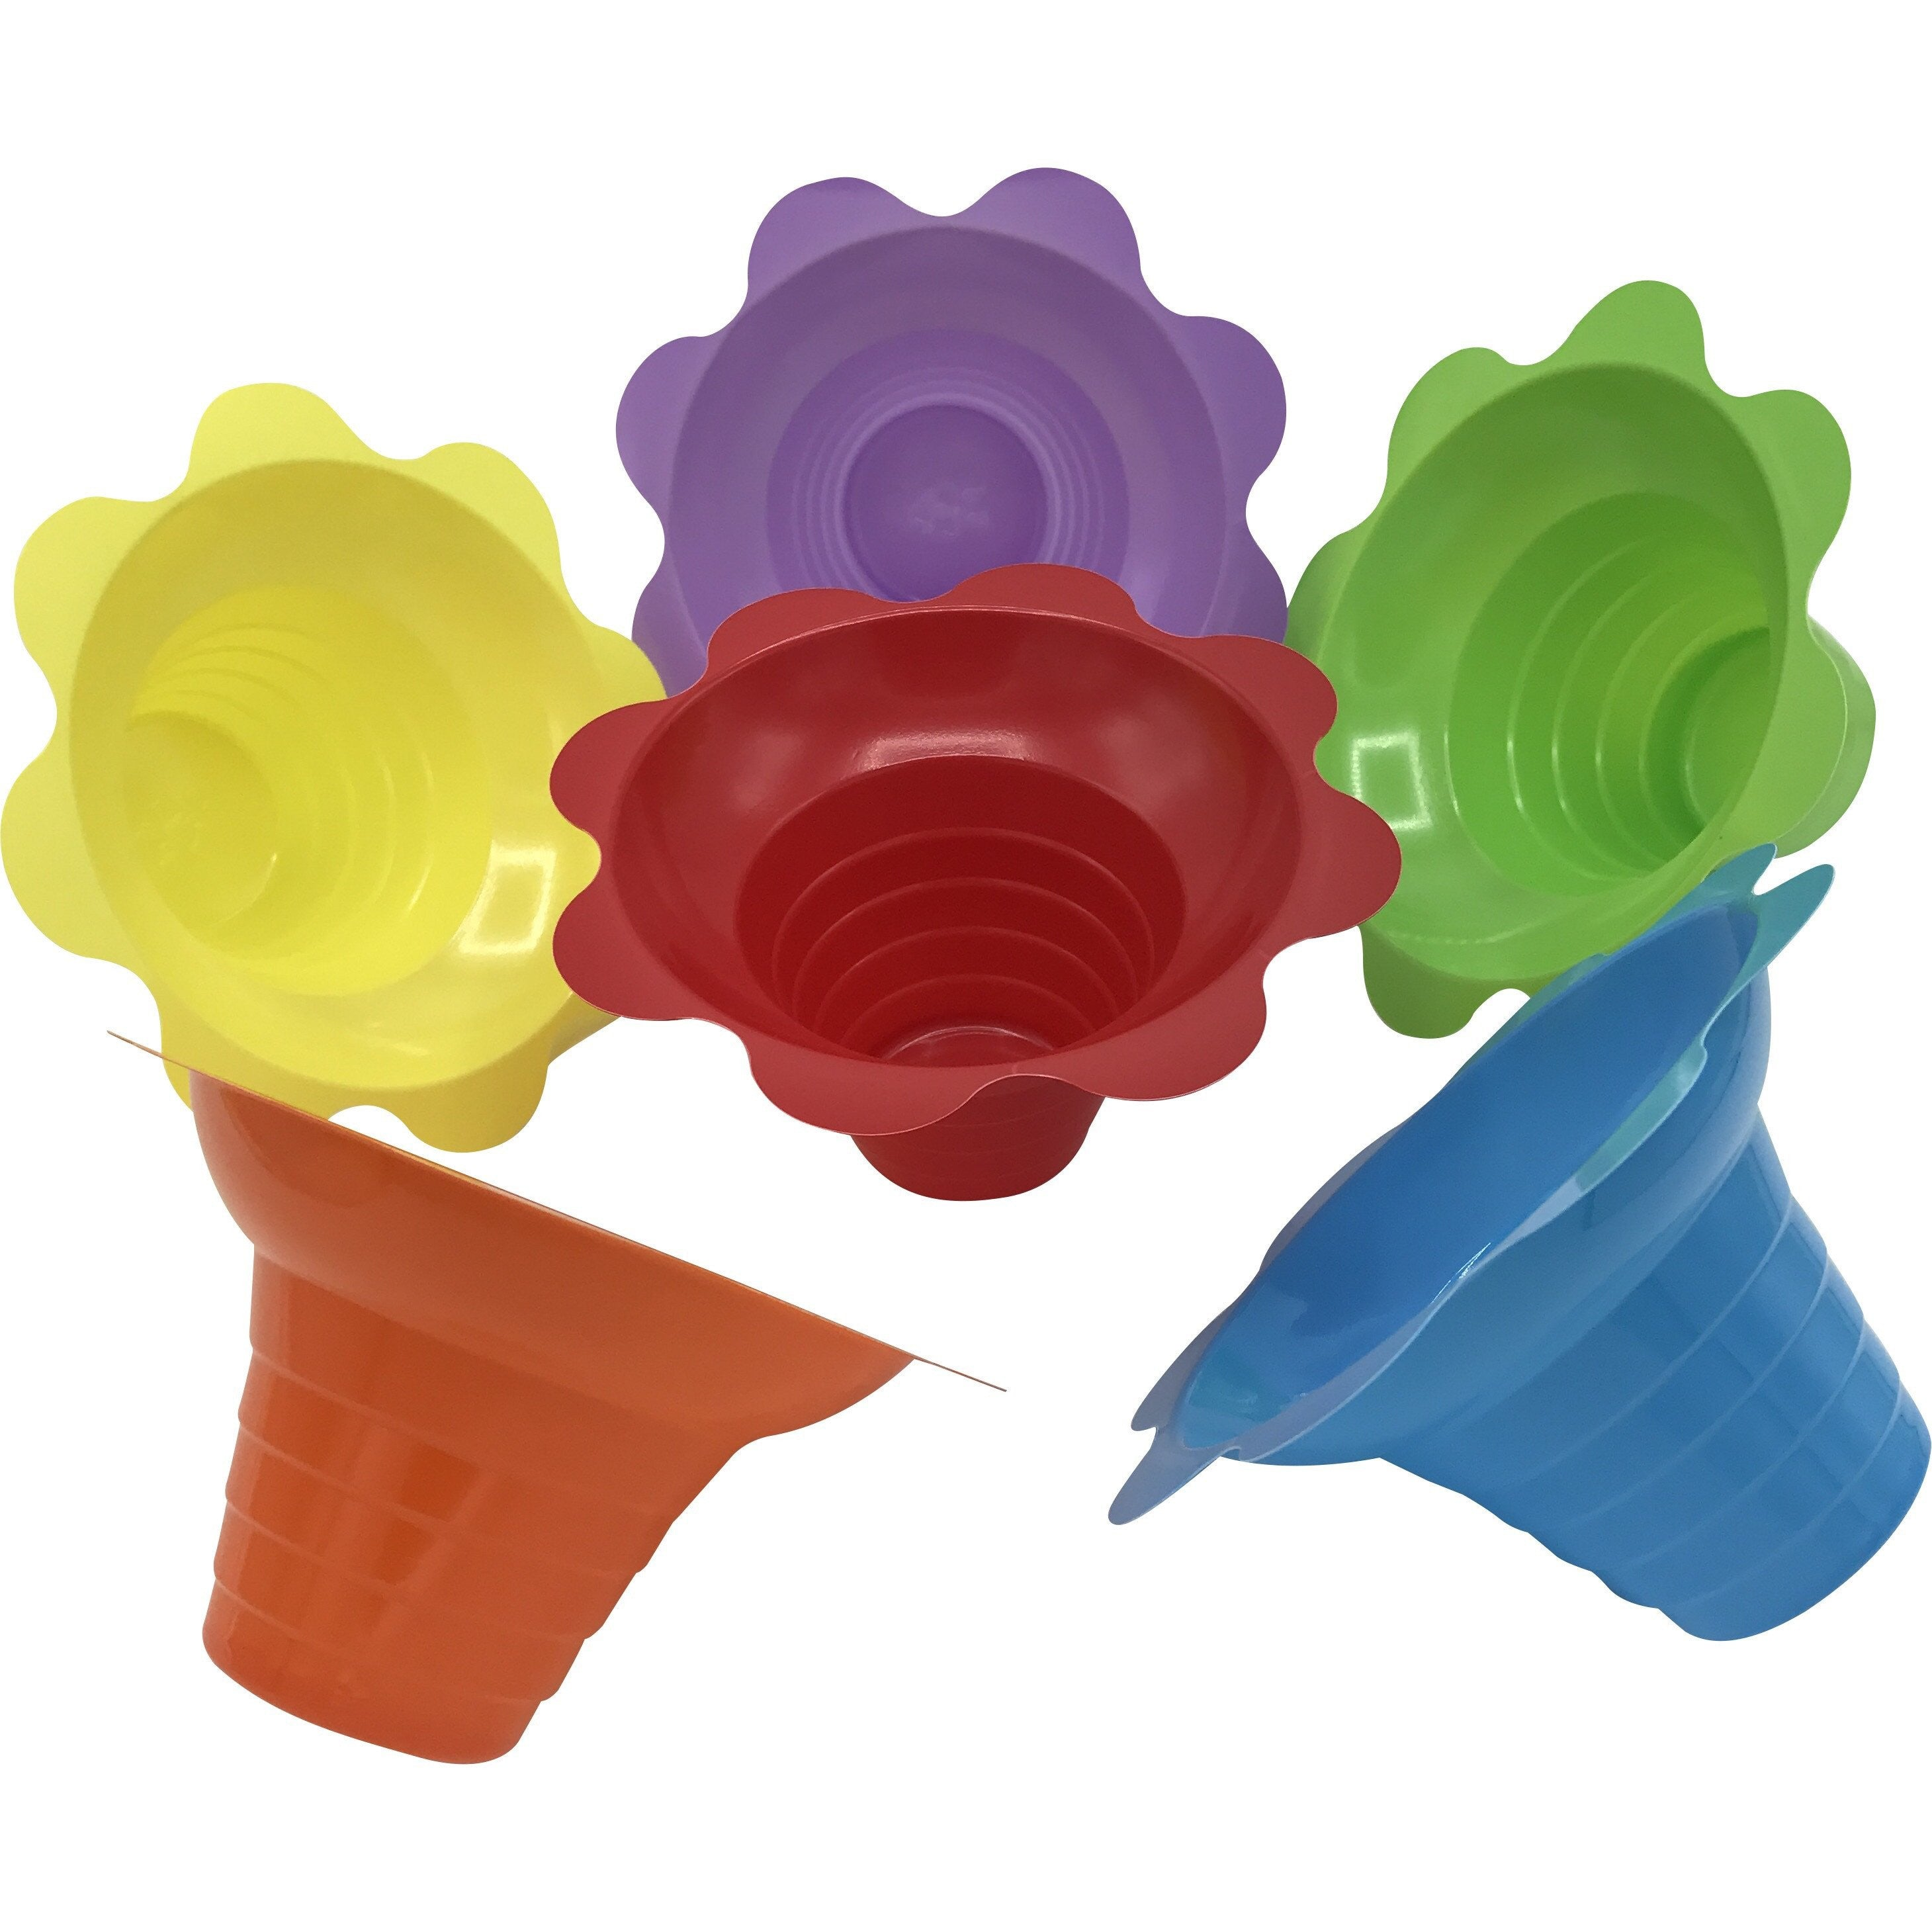 Shave Ice Flower Cups - Small (4 Oz.) - IcySkyy